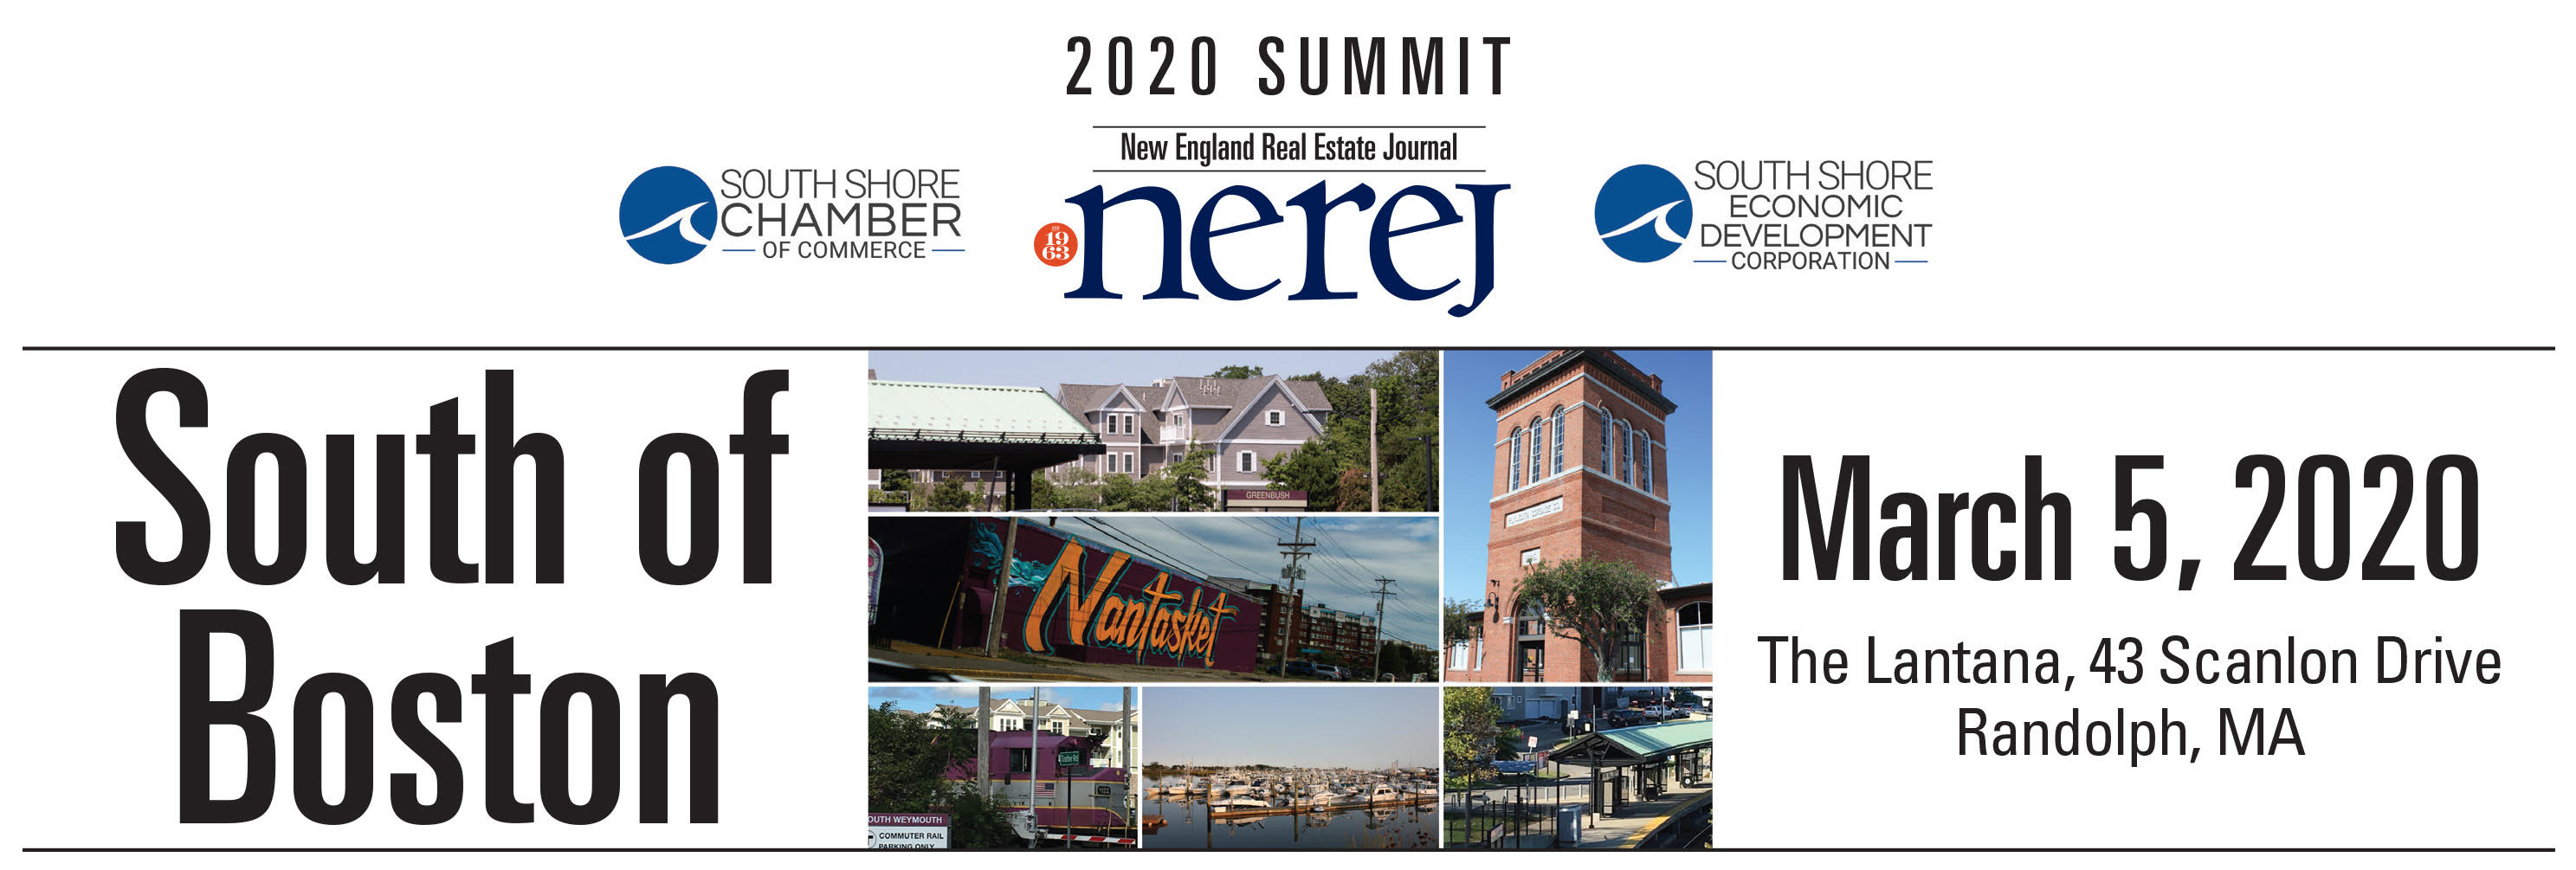 South Shore Chamber of Commerce and NEREJ to host 2020 South of Boston Summit - March 5